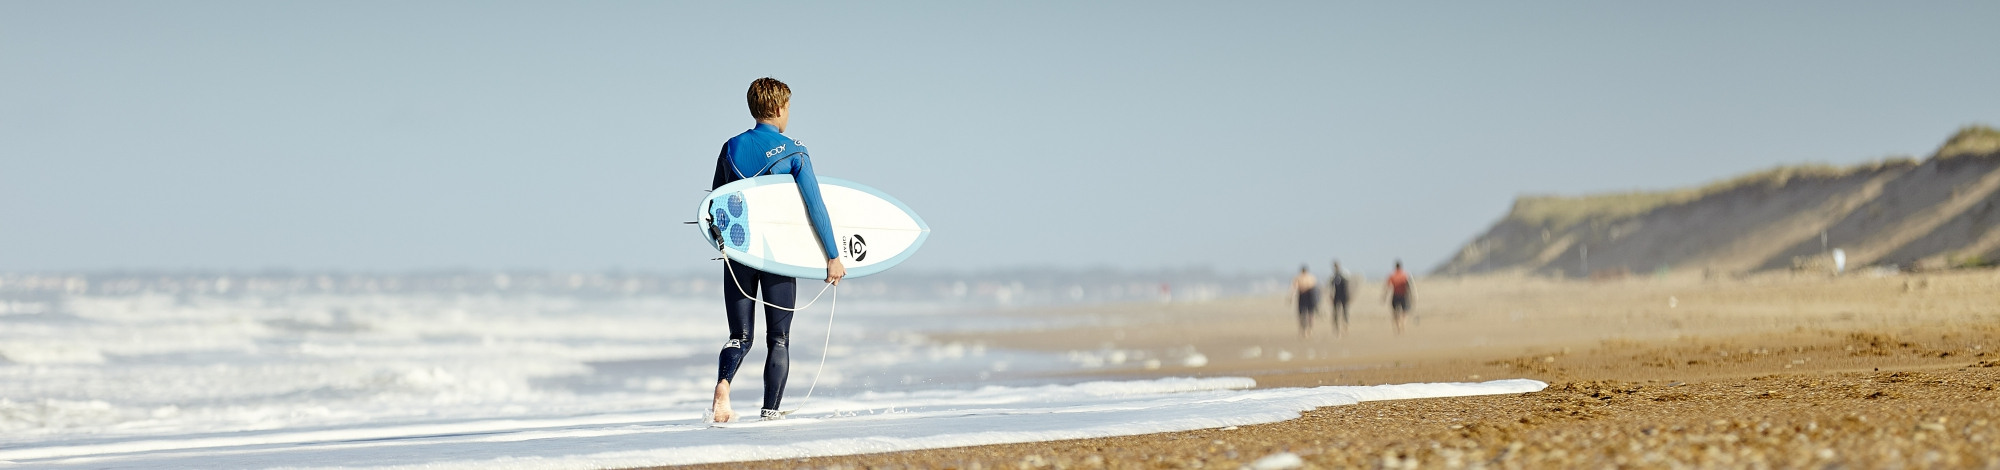 Copyright_A.Lamoureux_Vendee_Expansion_Surf_vendee_19